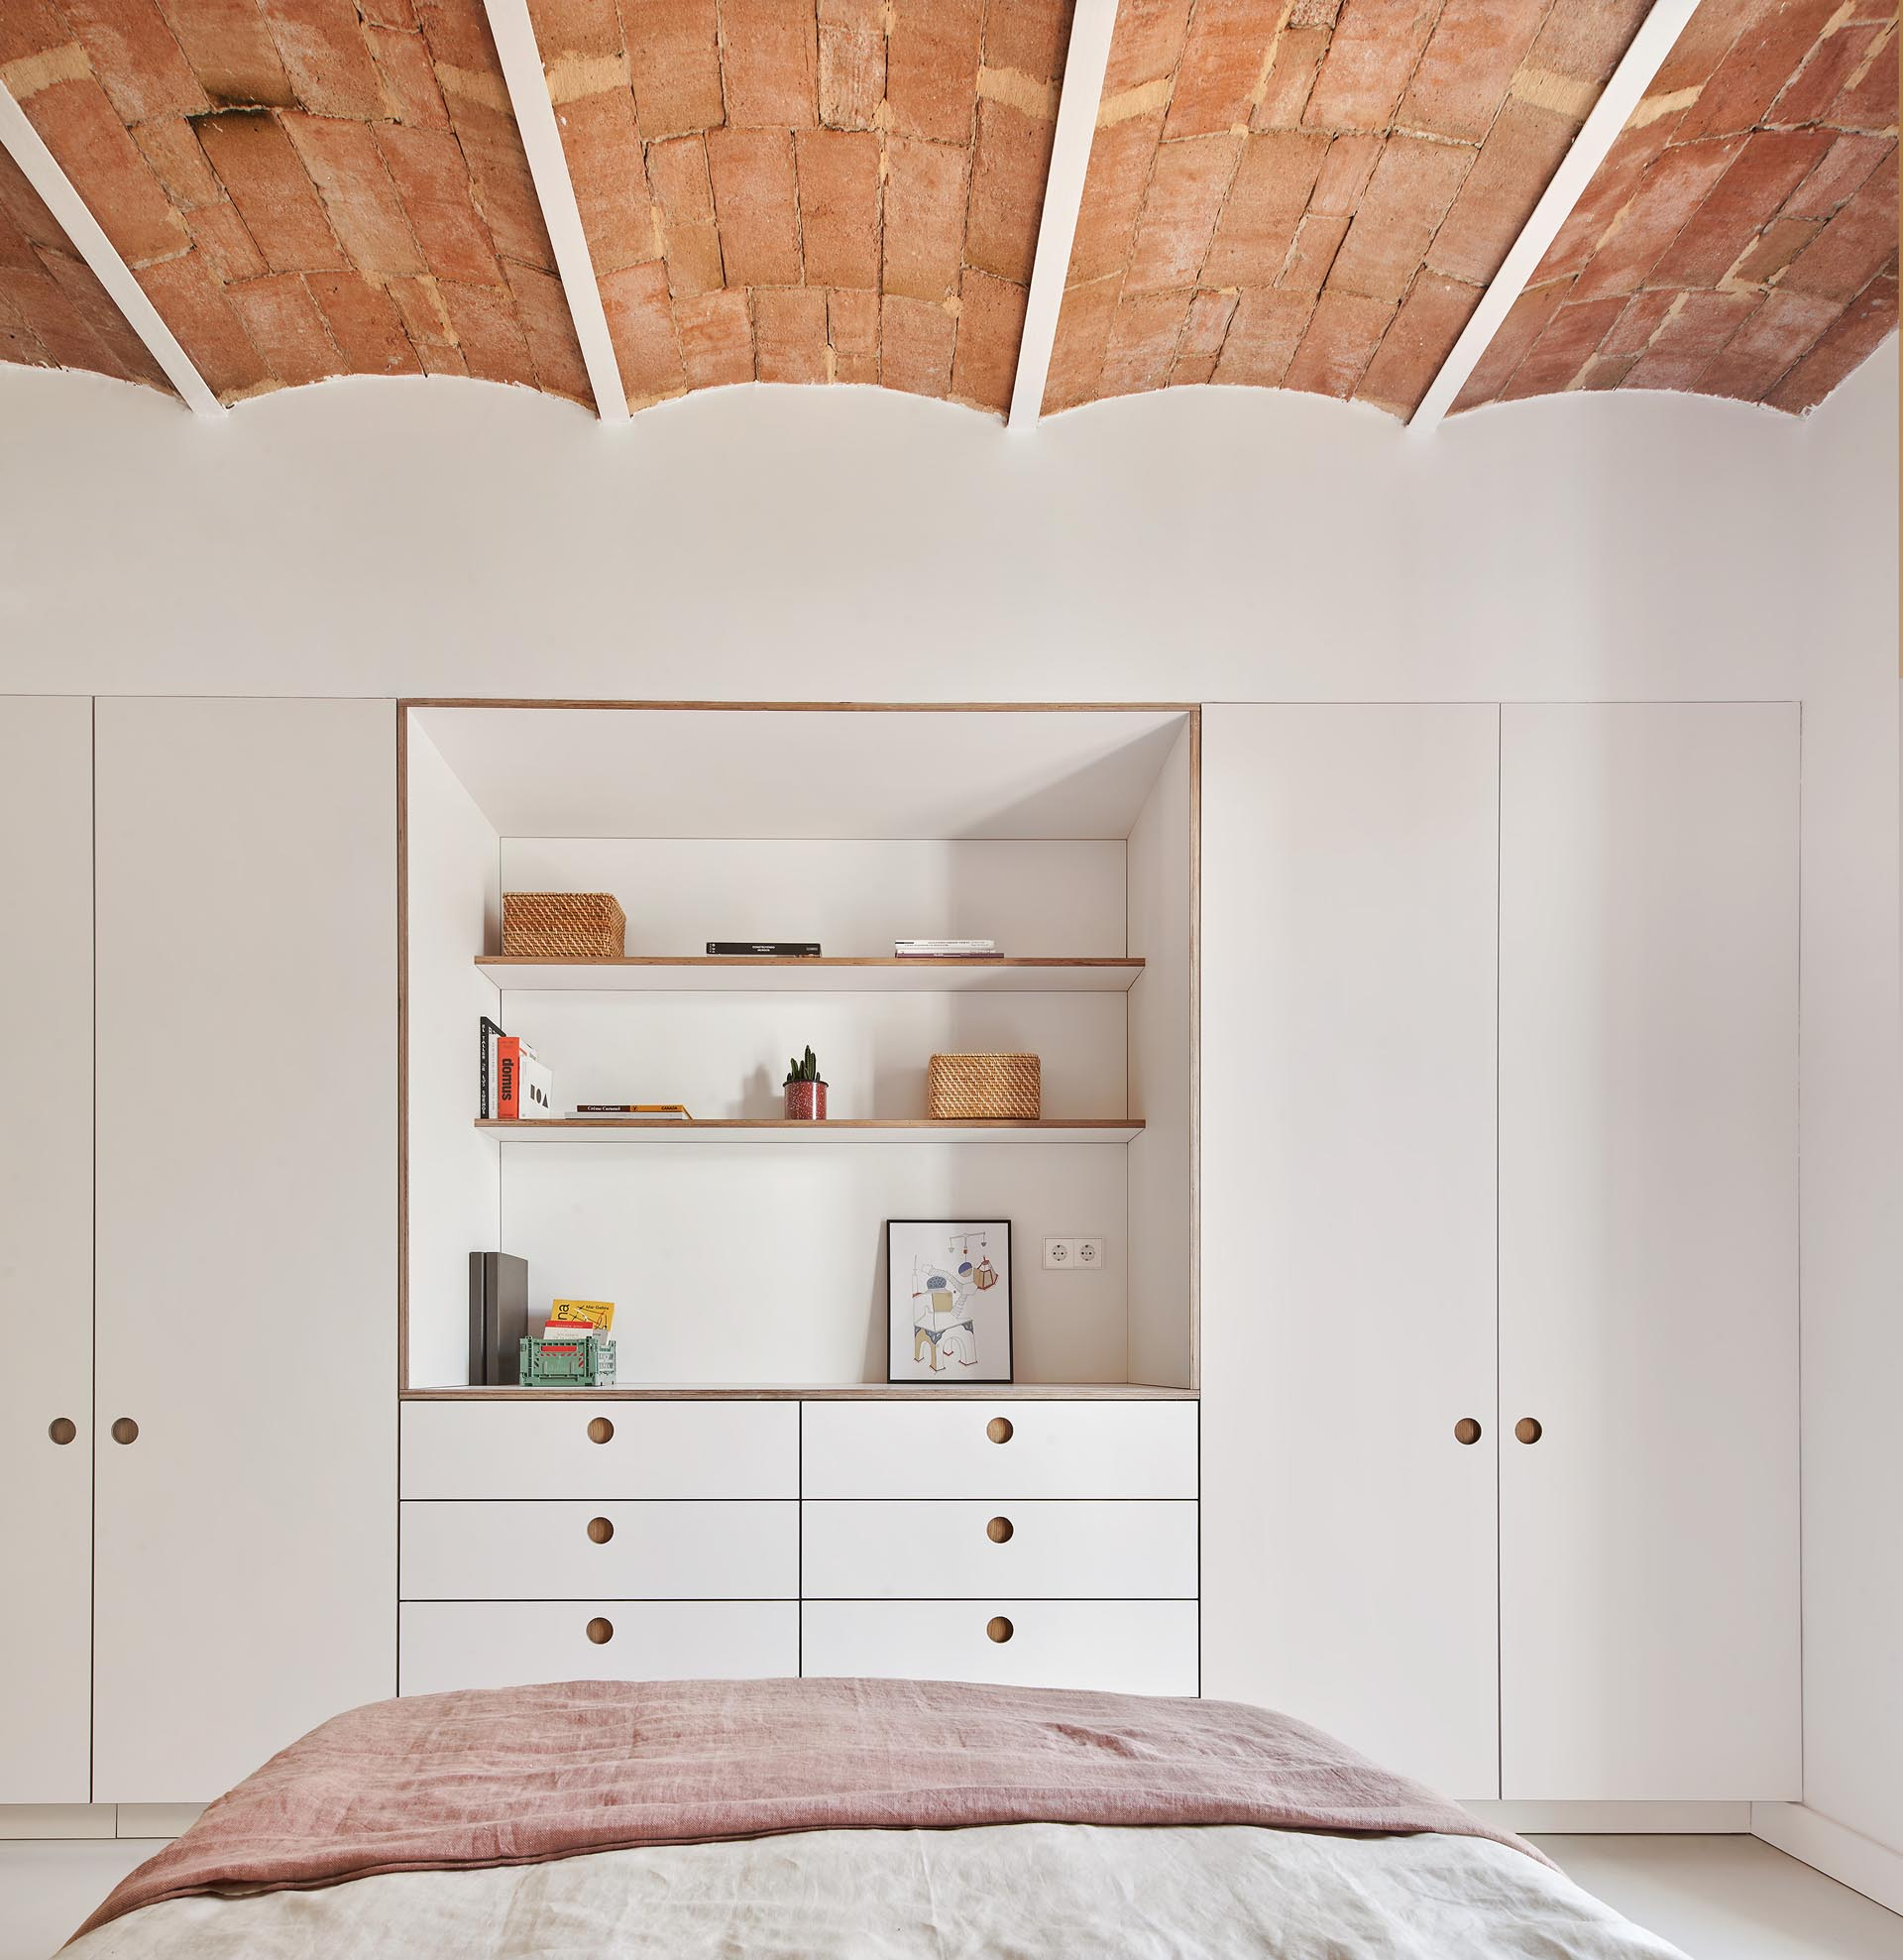 Minimalist bedroom closets and drawers with recessed finger pulls.